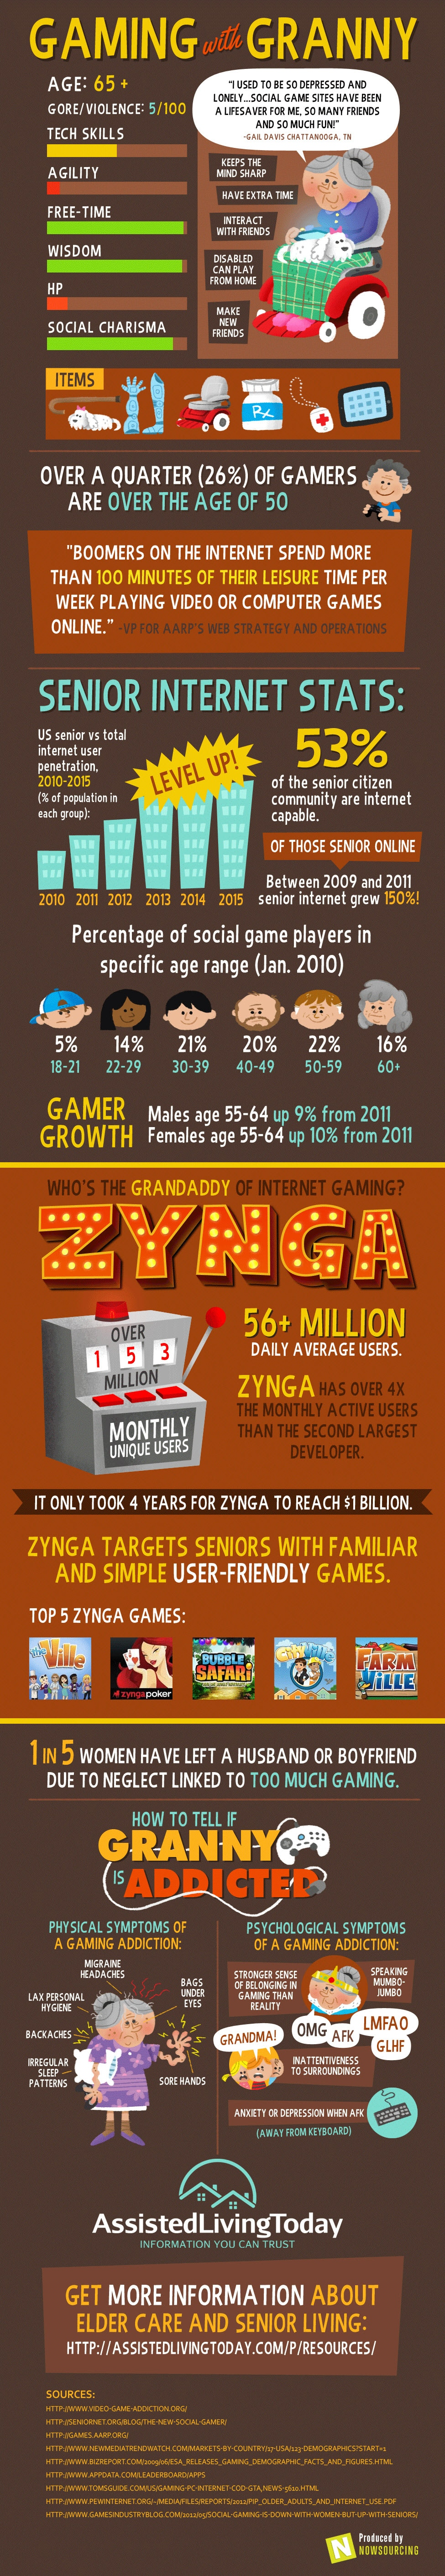 granny-game-activities-statistics-infographic